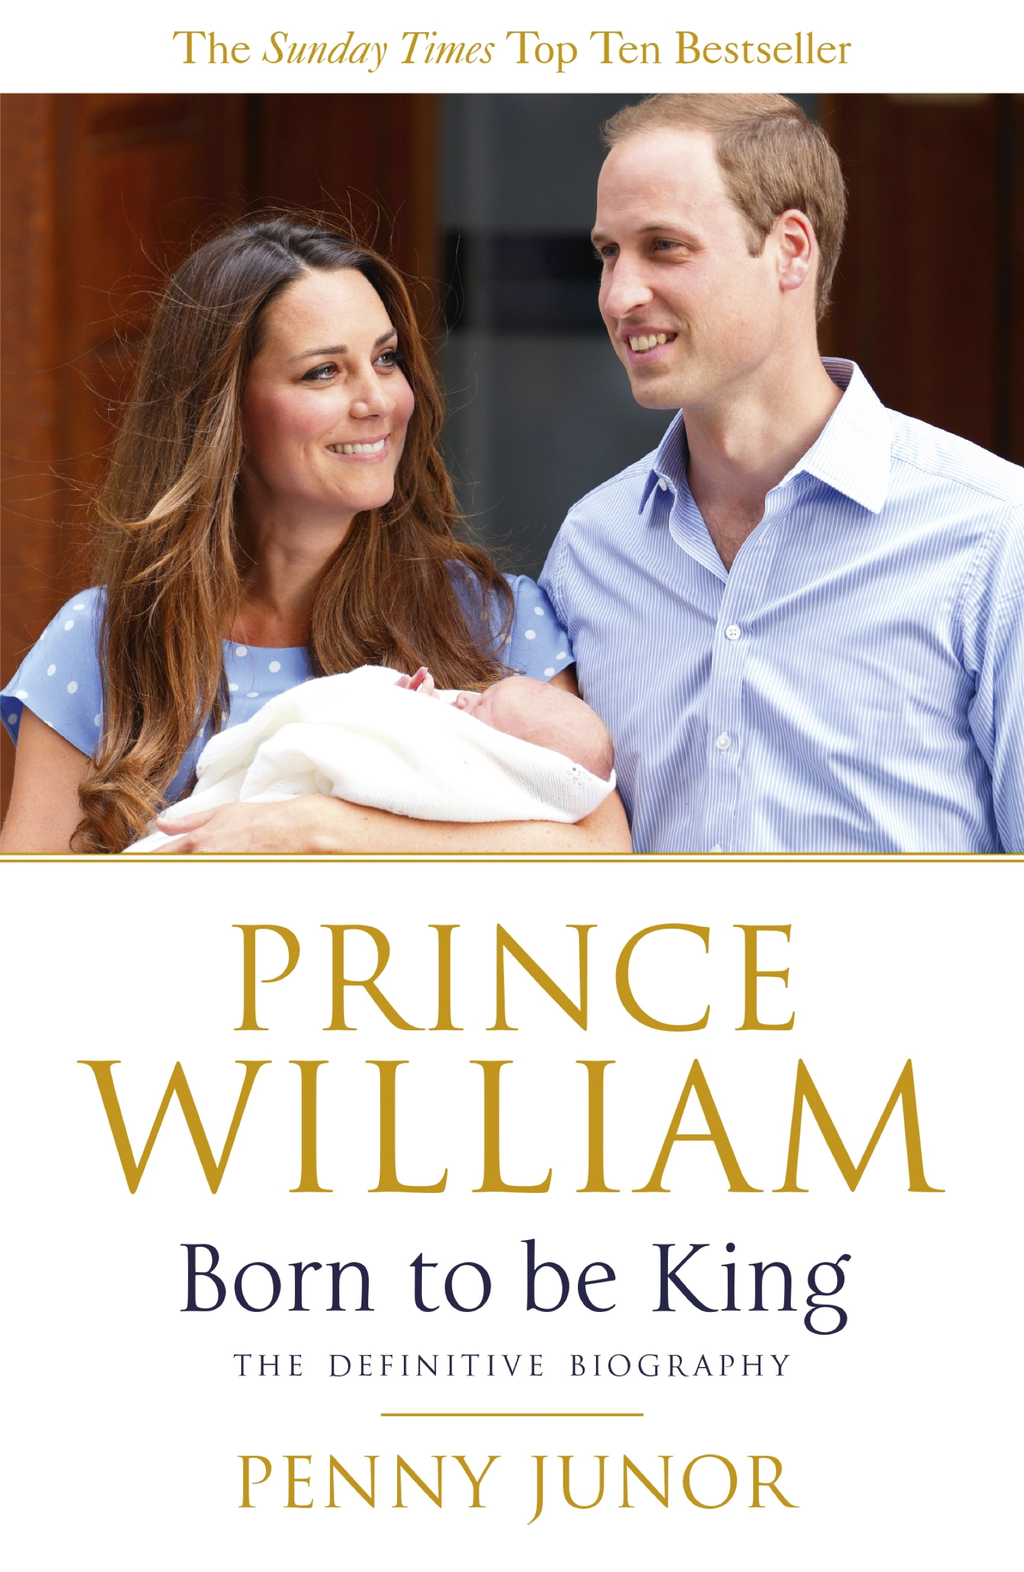 Prince William: Born to be King An intimate portrait